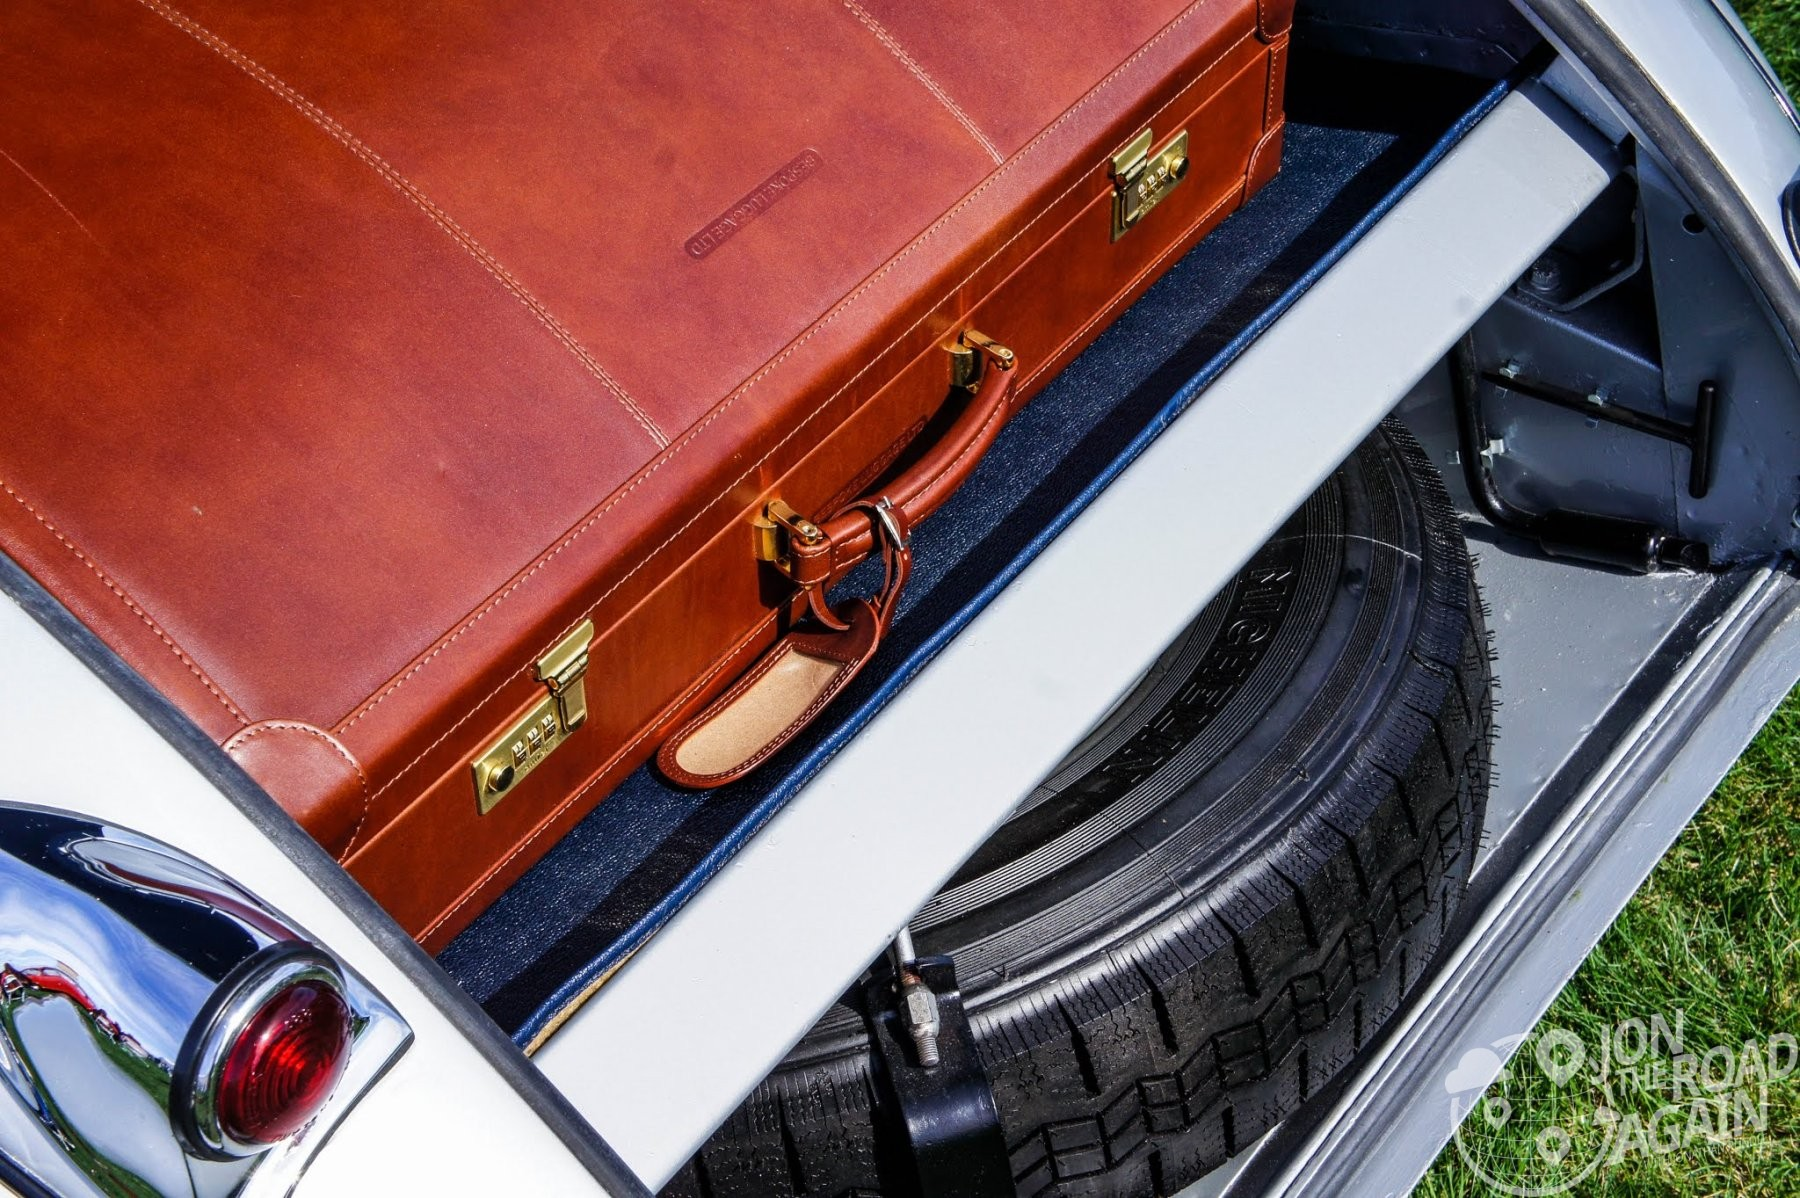 Bespoke leather luggage in a Jaguar